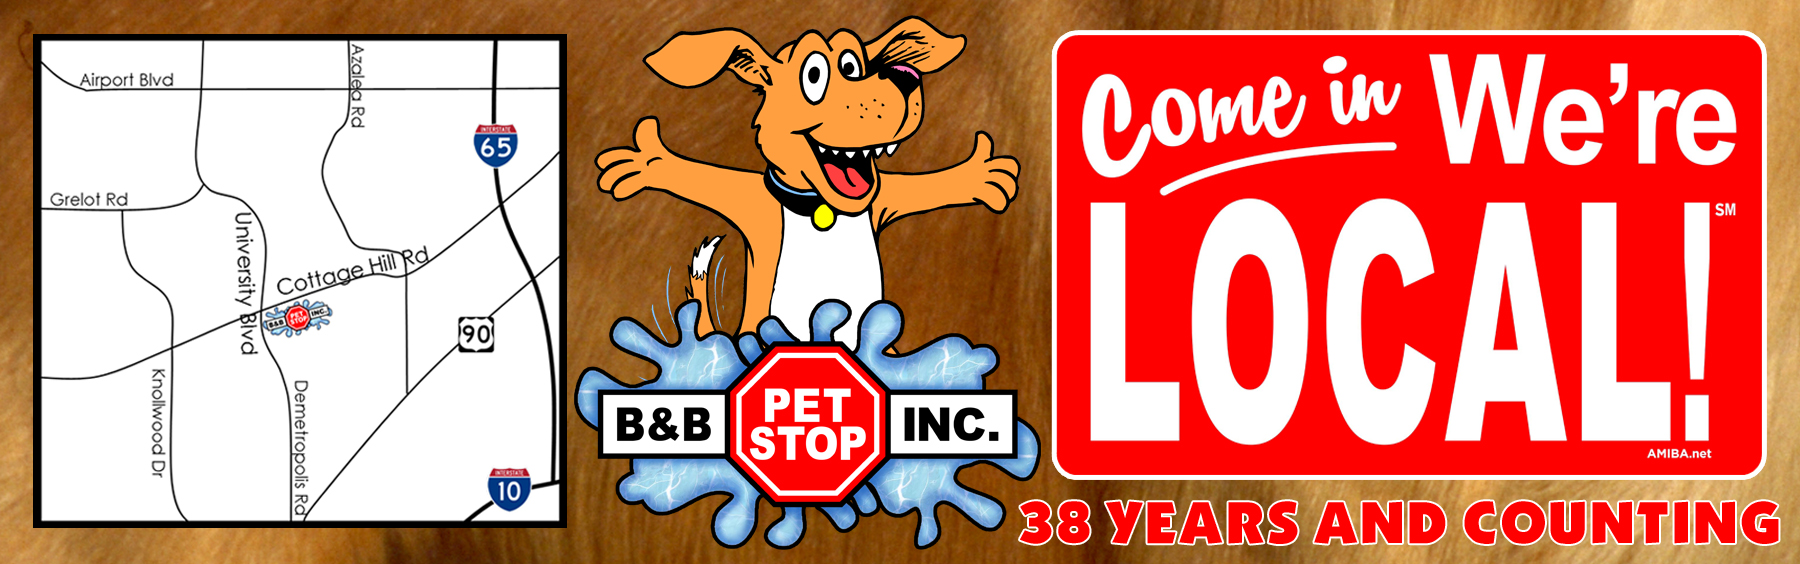 B&B Pet Stop is your local pet store